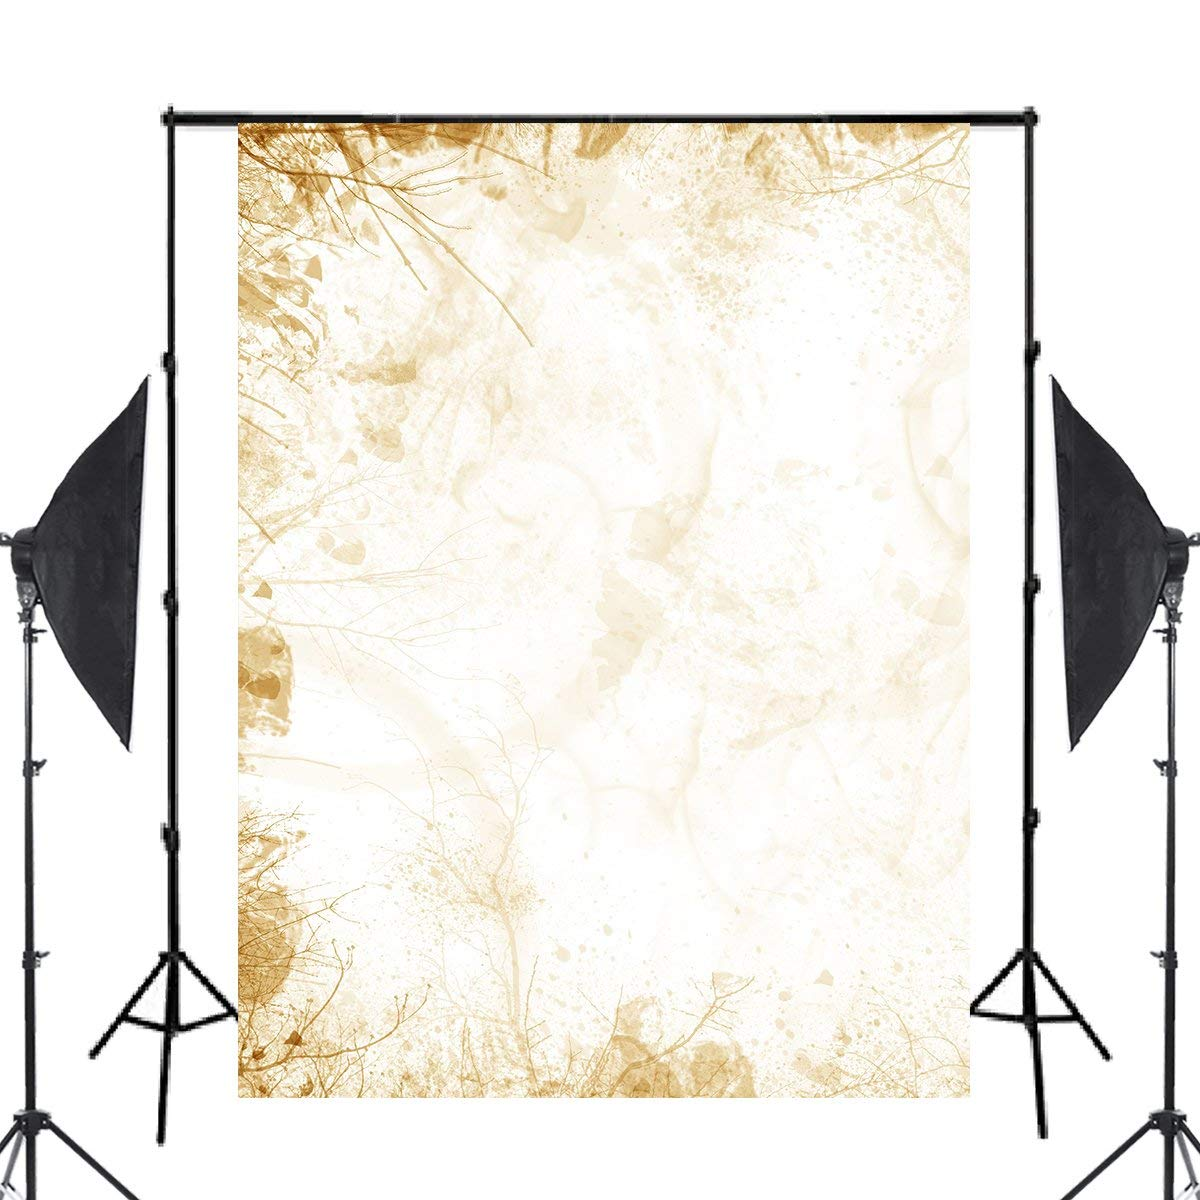 Image 2 - Bright Dry Twigs Photography Background Painting Backdrop Natural Scenery Photo Studio Props Backdrop Wall 5x7ft-in Photo Studio Accessories from Consumer Electronics